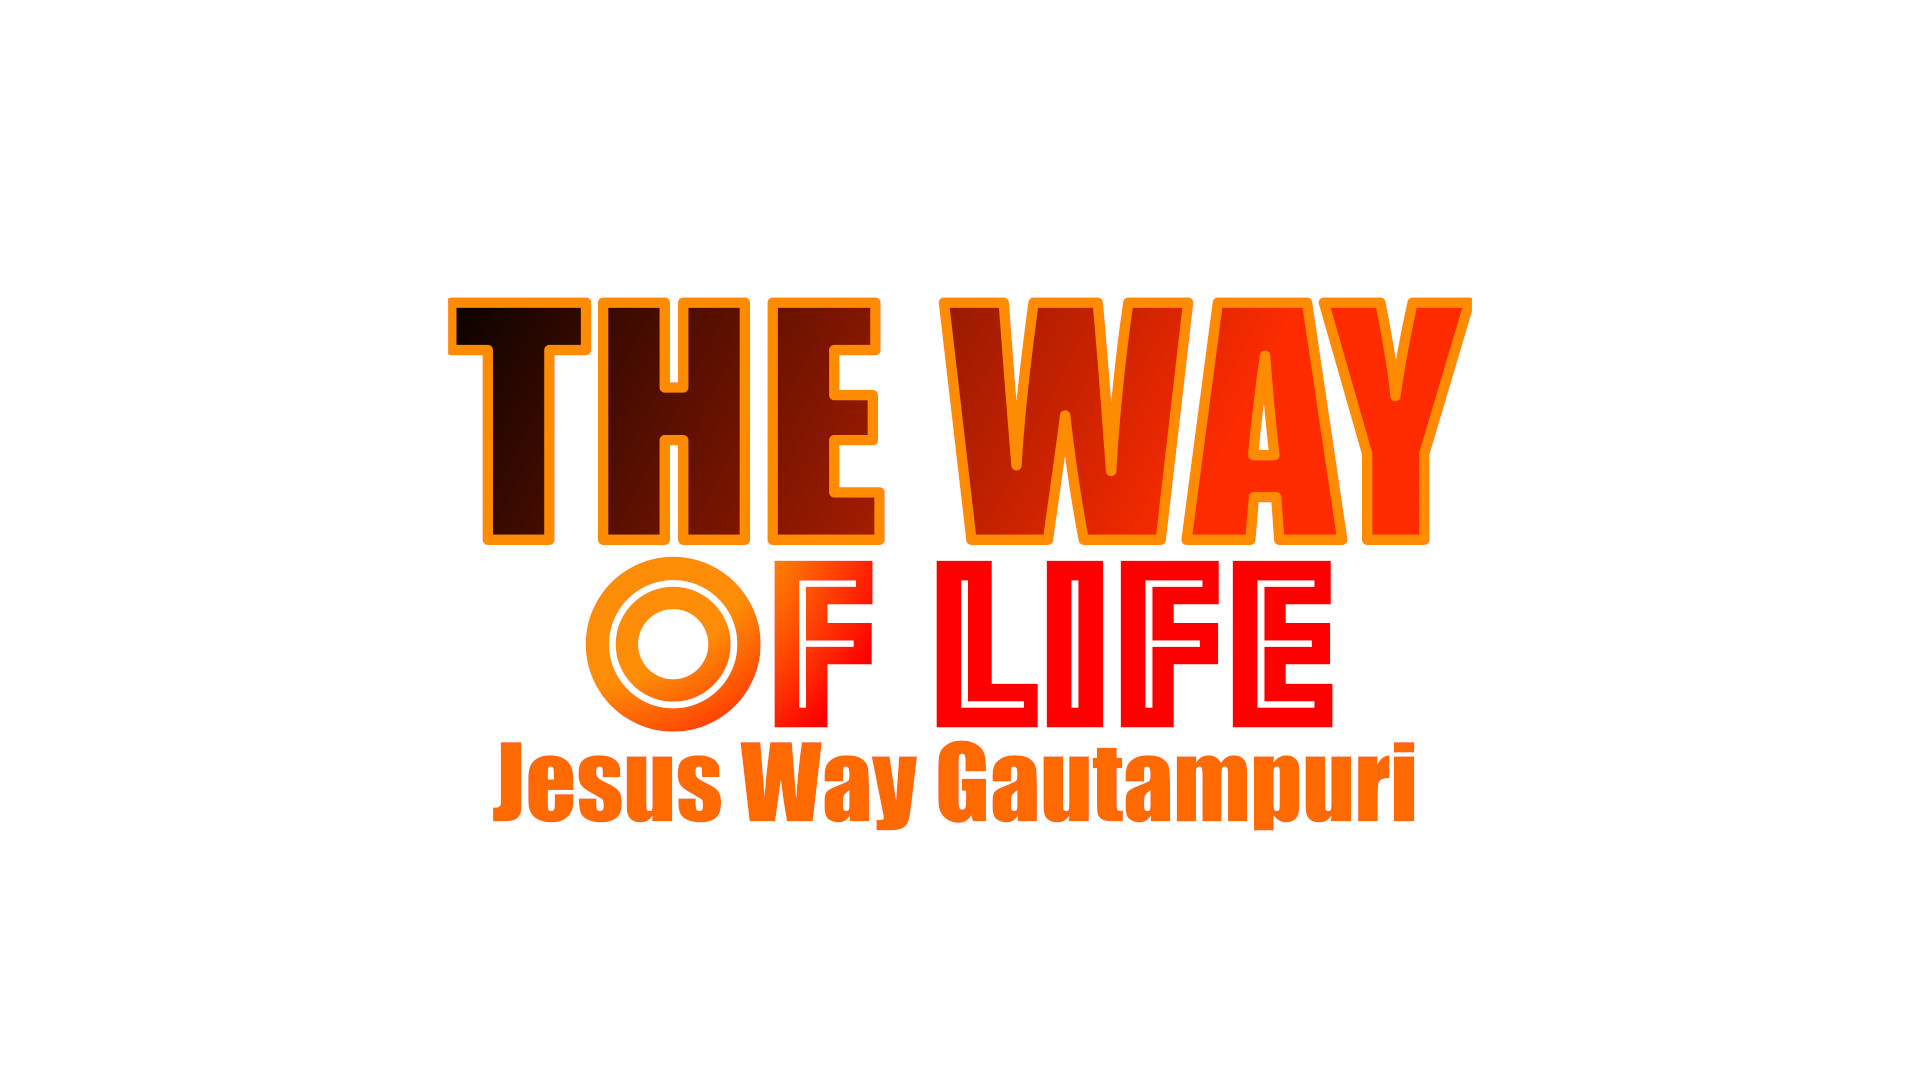 The Way of Life New Delhi Gautampuri Church